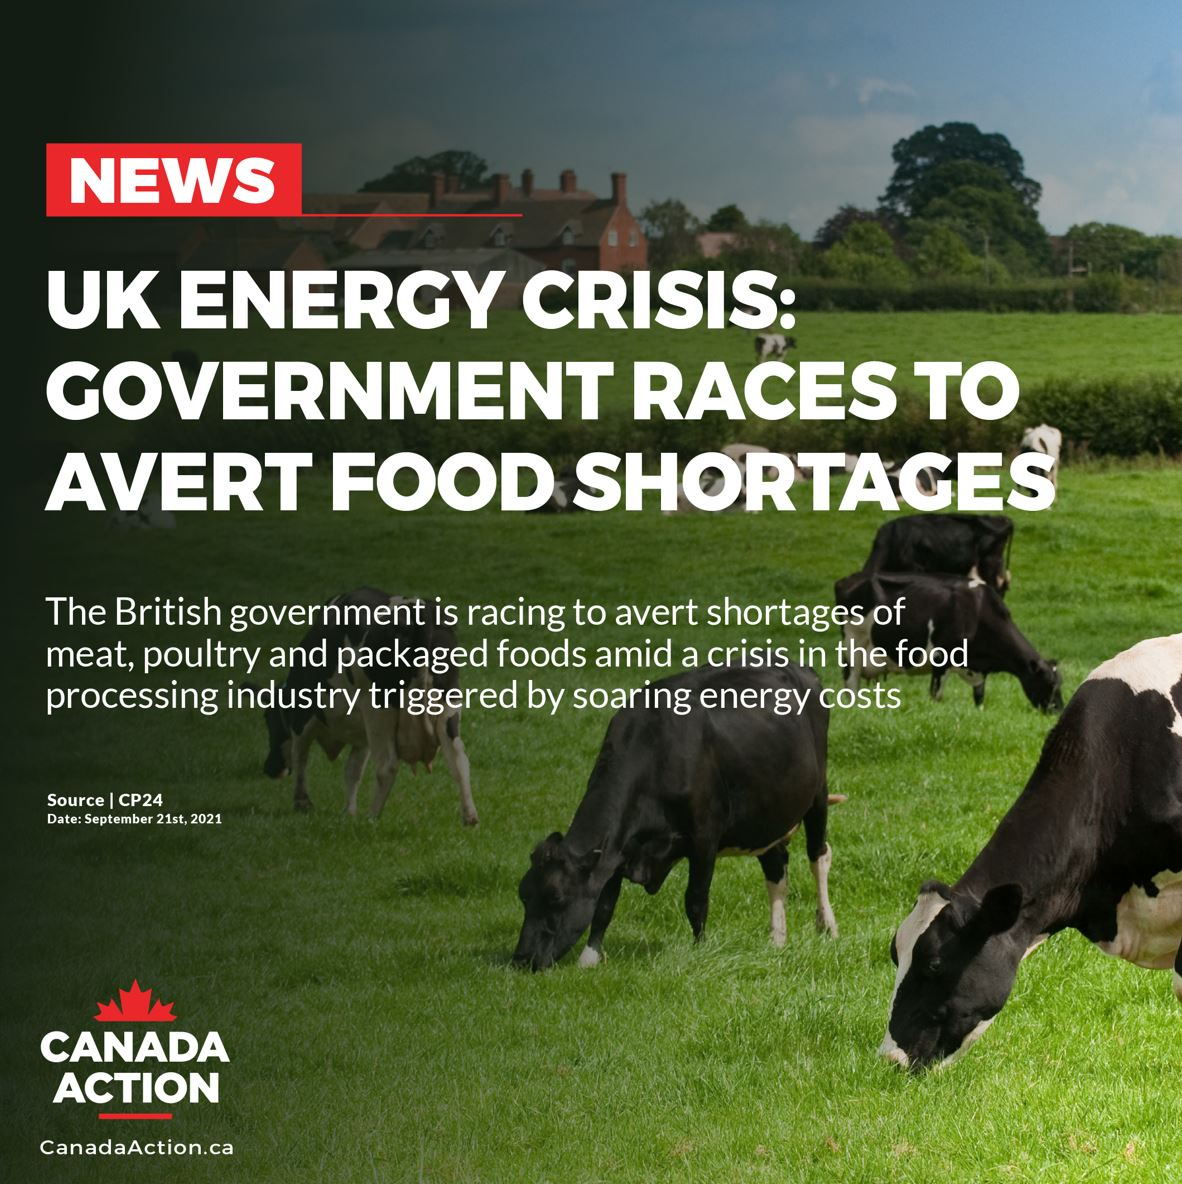 global energy shortage in 2021 UK government races to prevent food shortages